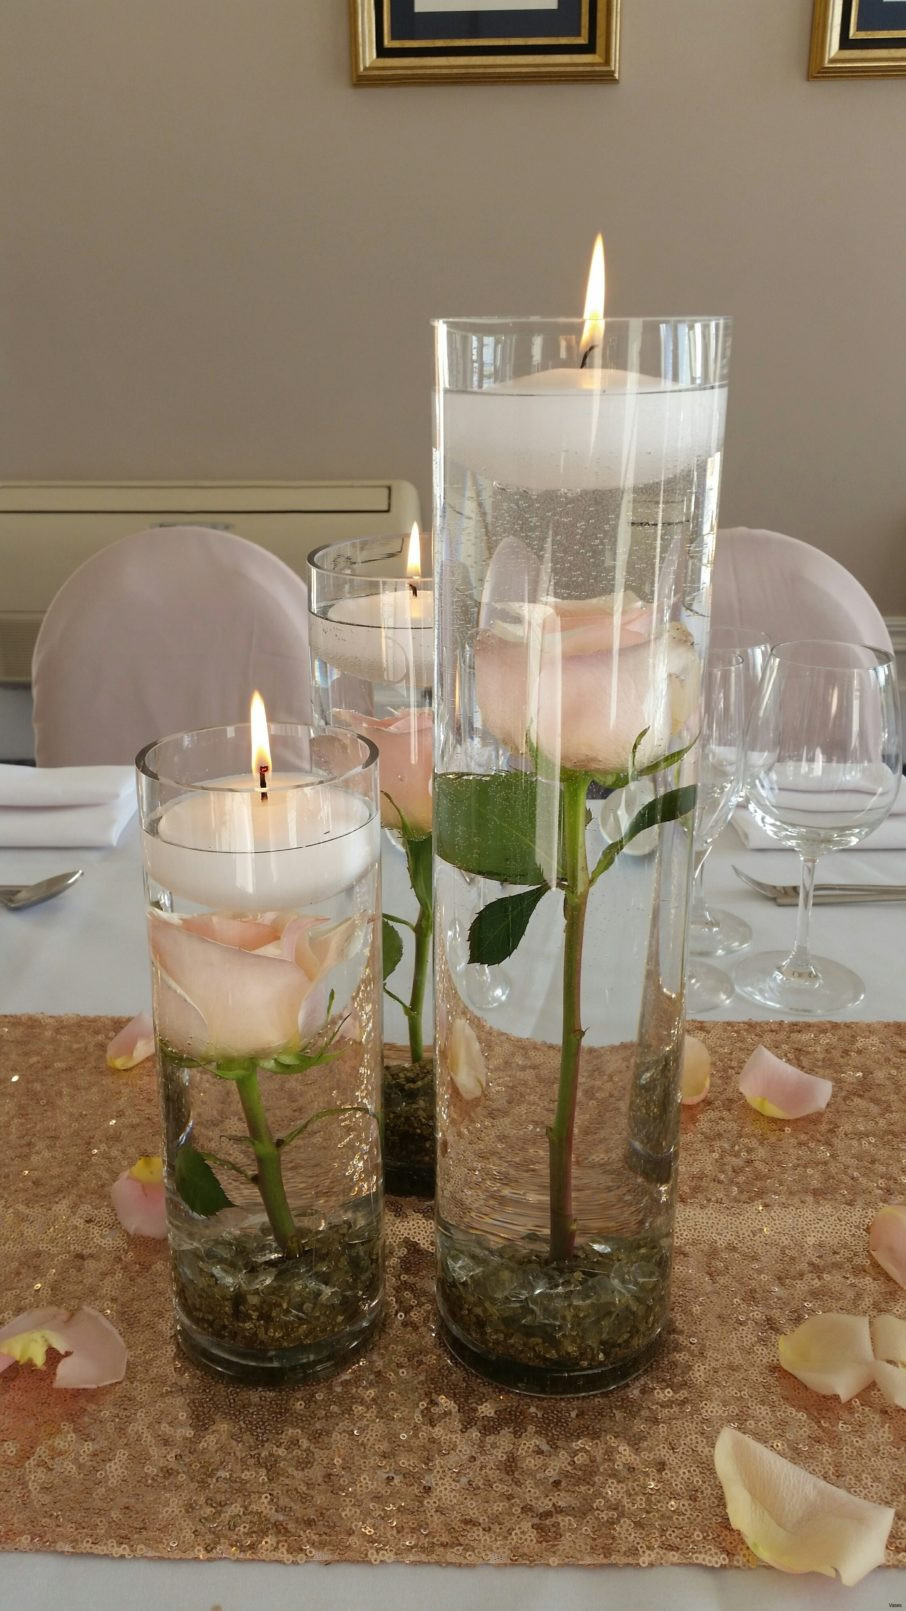 floating flowers in vases centerpieces of floor vases with branches floor vase ideas tall floor vases tall intended for amusing tall vase centerpiece ideas vases floating flowers in